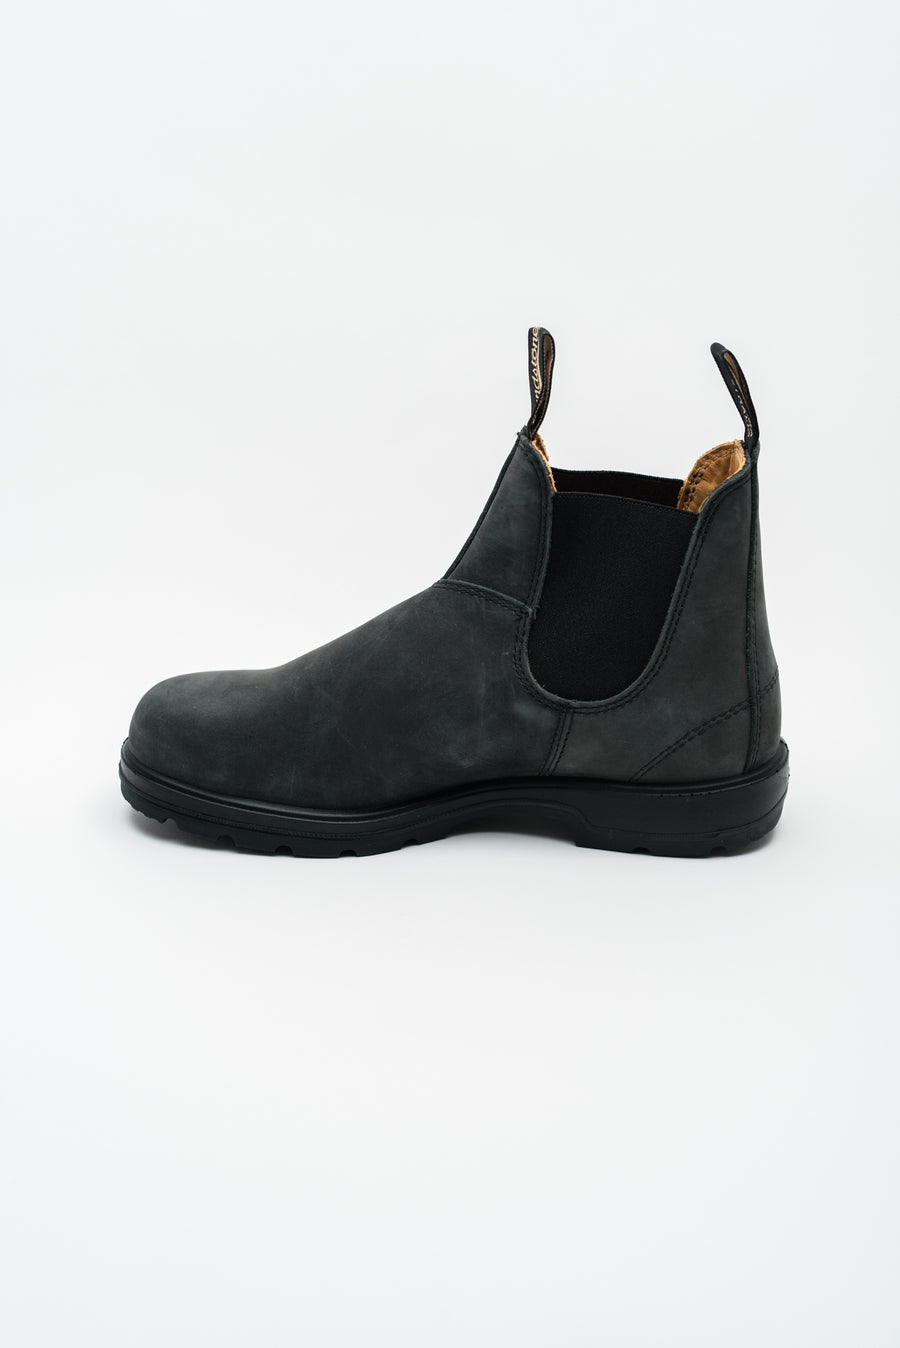 Men's 587 Rustic Black Blundstone